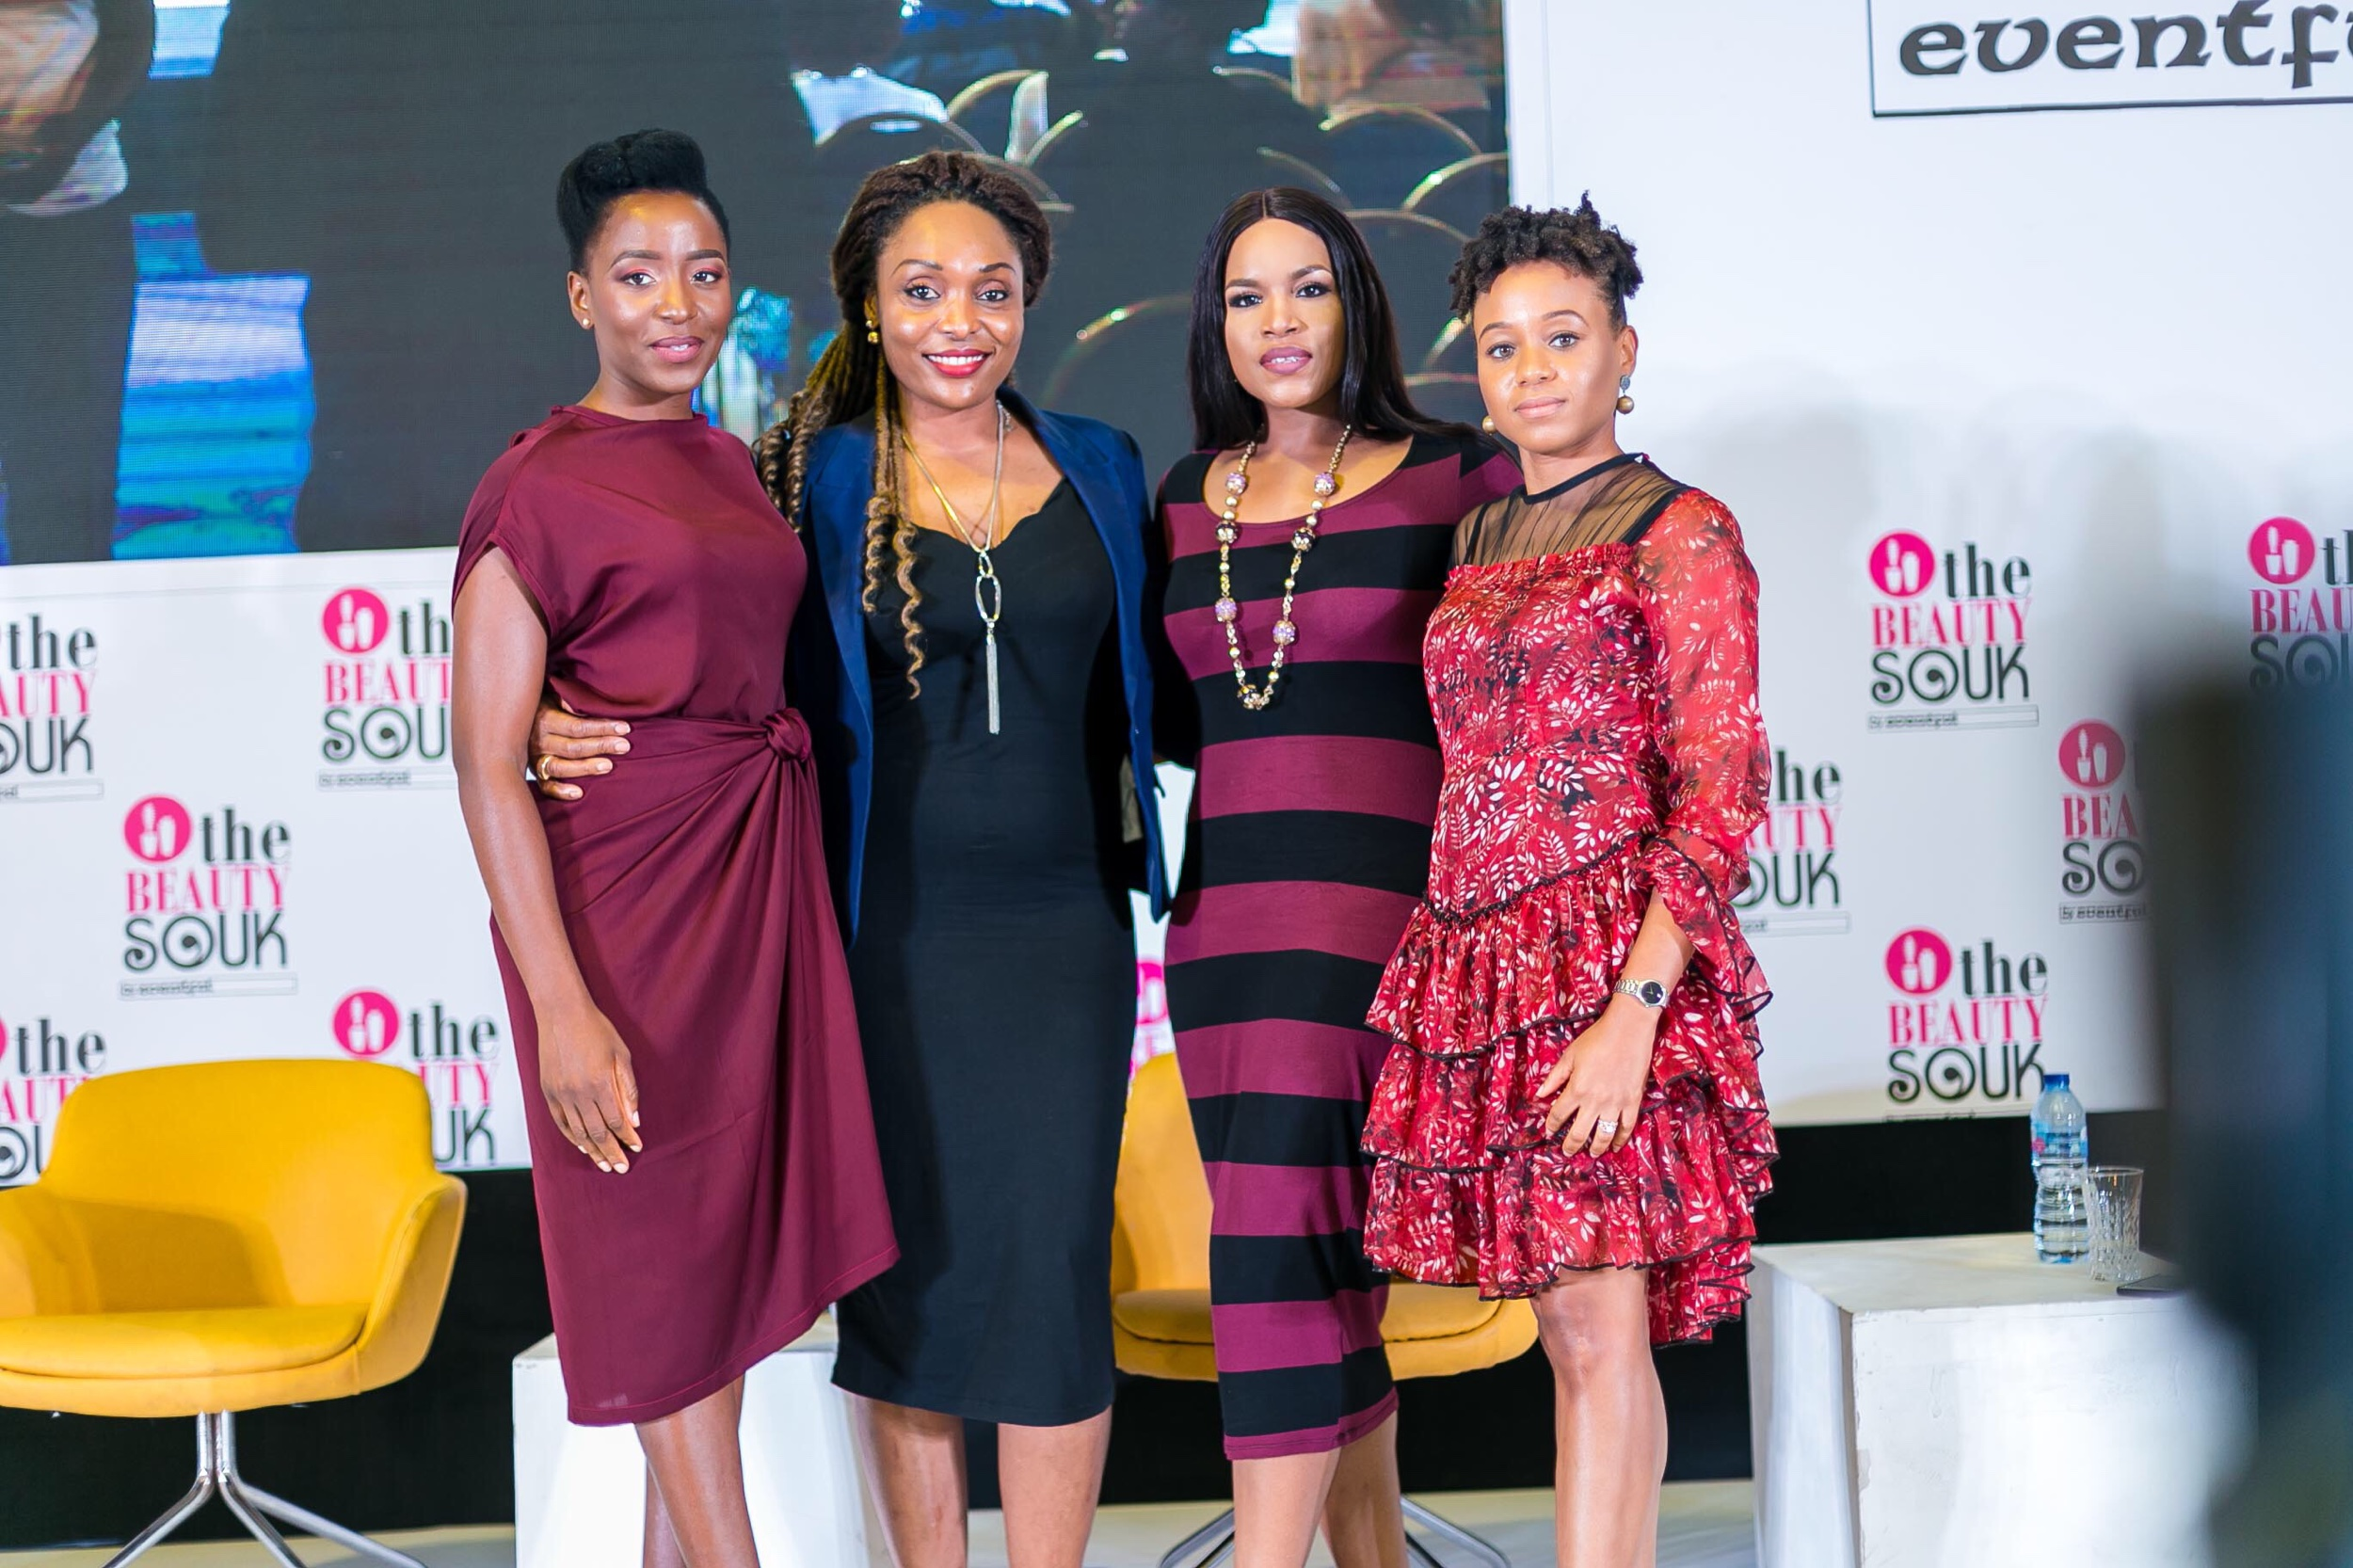 L-R by Instagram handles: @orekagodis, @kemilewis of @klsnaturals, Elaine Shobanjo of @shomya_lag and Koyinsola Vera Cruz of @tressesbykvc